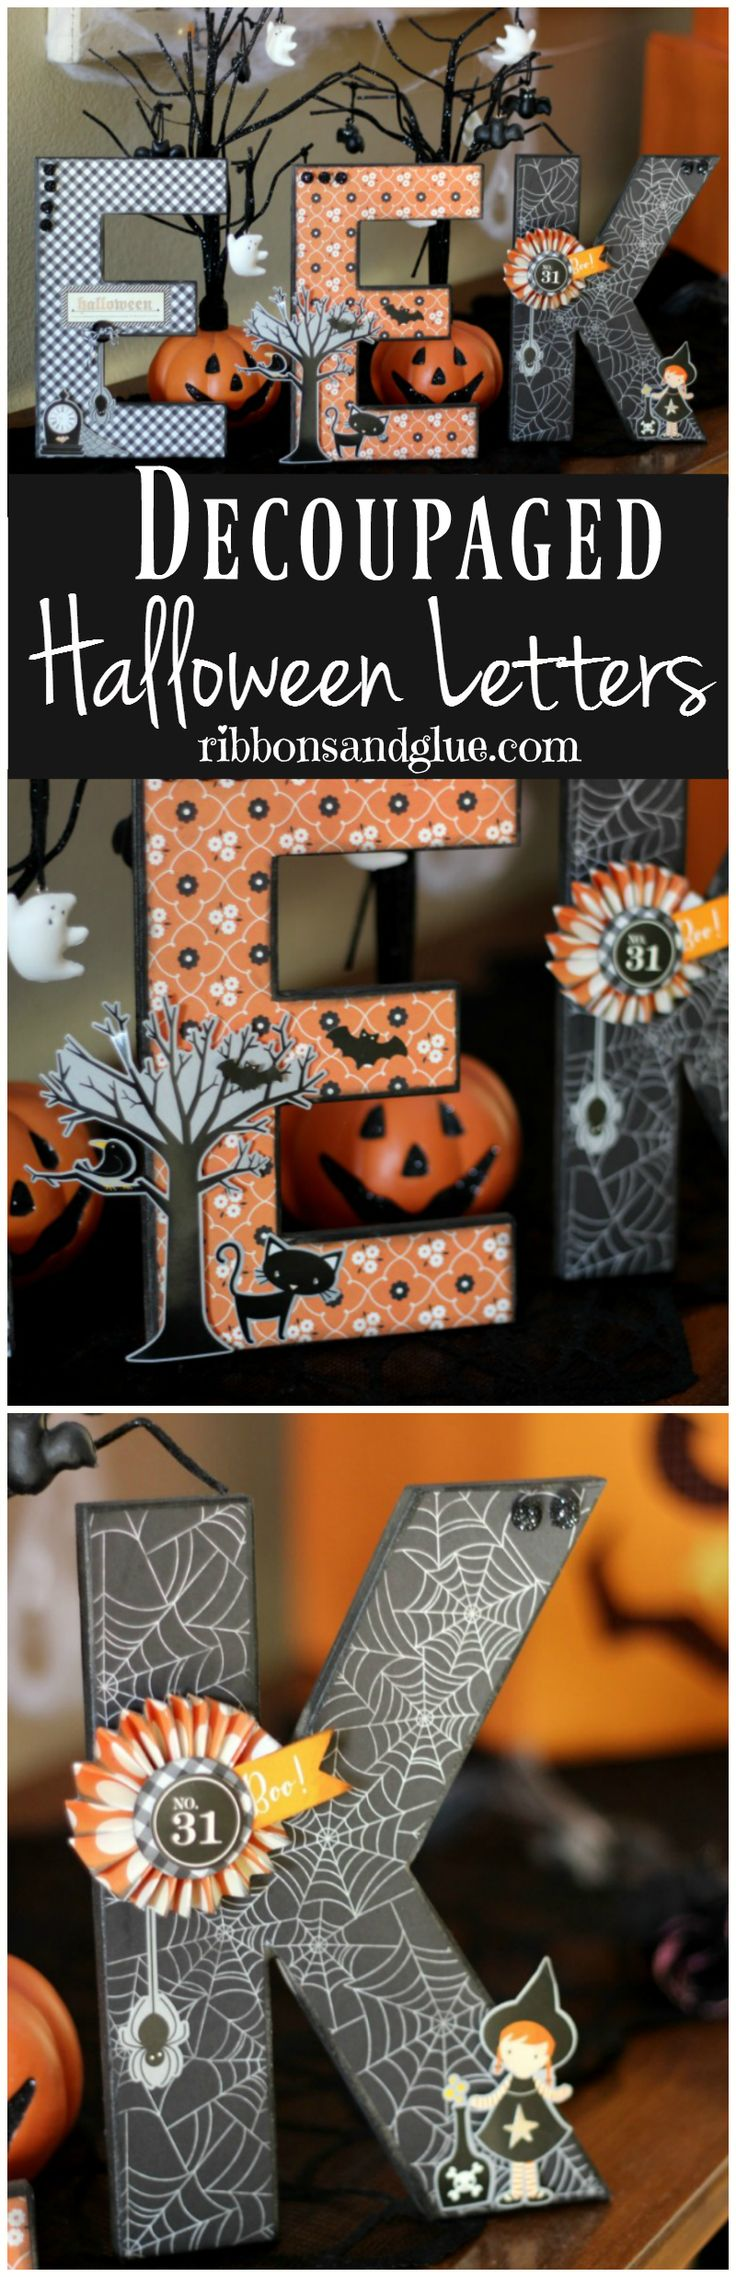 Create Decoupaged Halloween Letters by using mod podge to adhere Halloween themed paper on to paper mache letters and embellish.